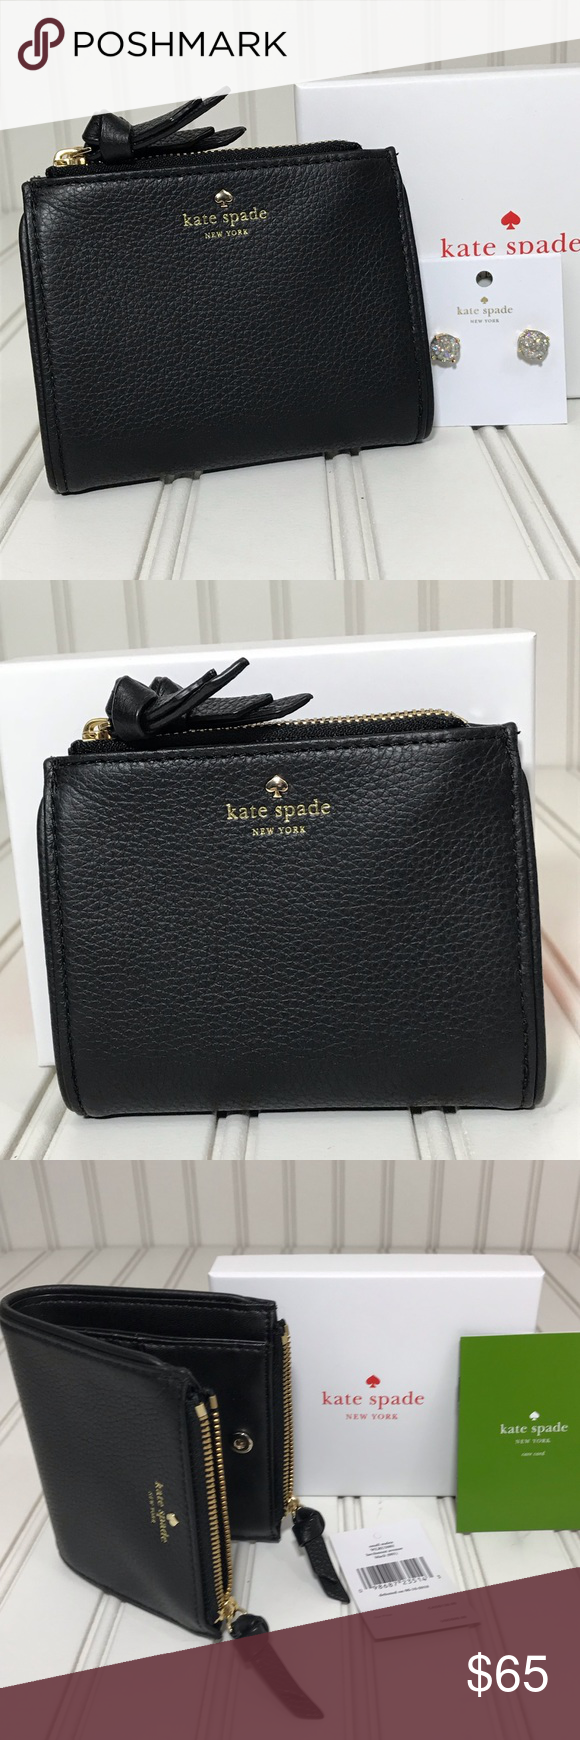 7f0160222e926 NWT Kate Spade Small Malea Larchmont Ave Wallet This small Malea Larchmont  Avenue wallet in black